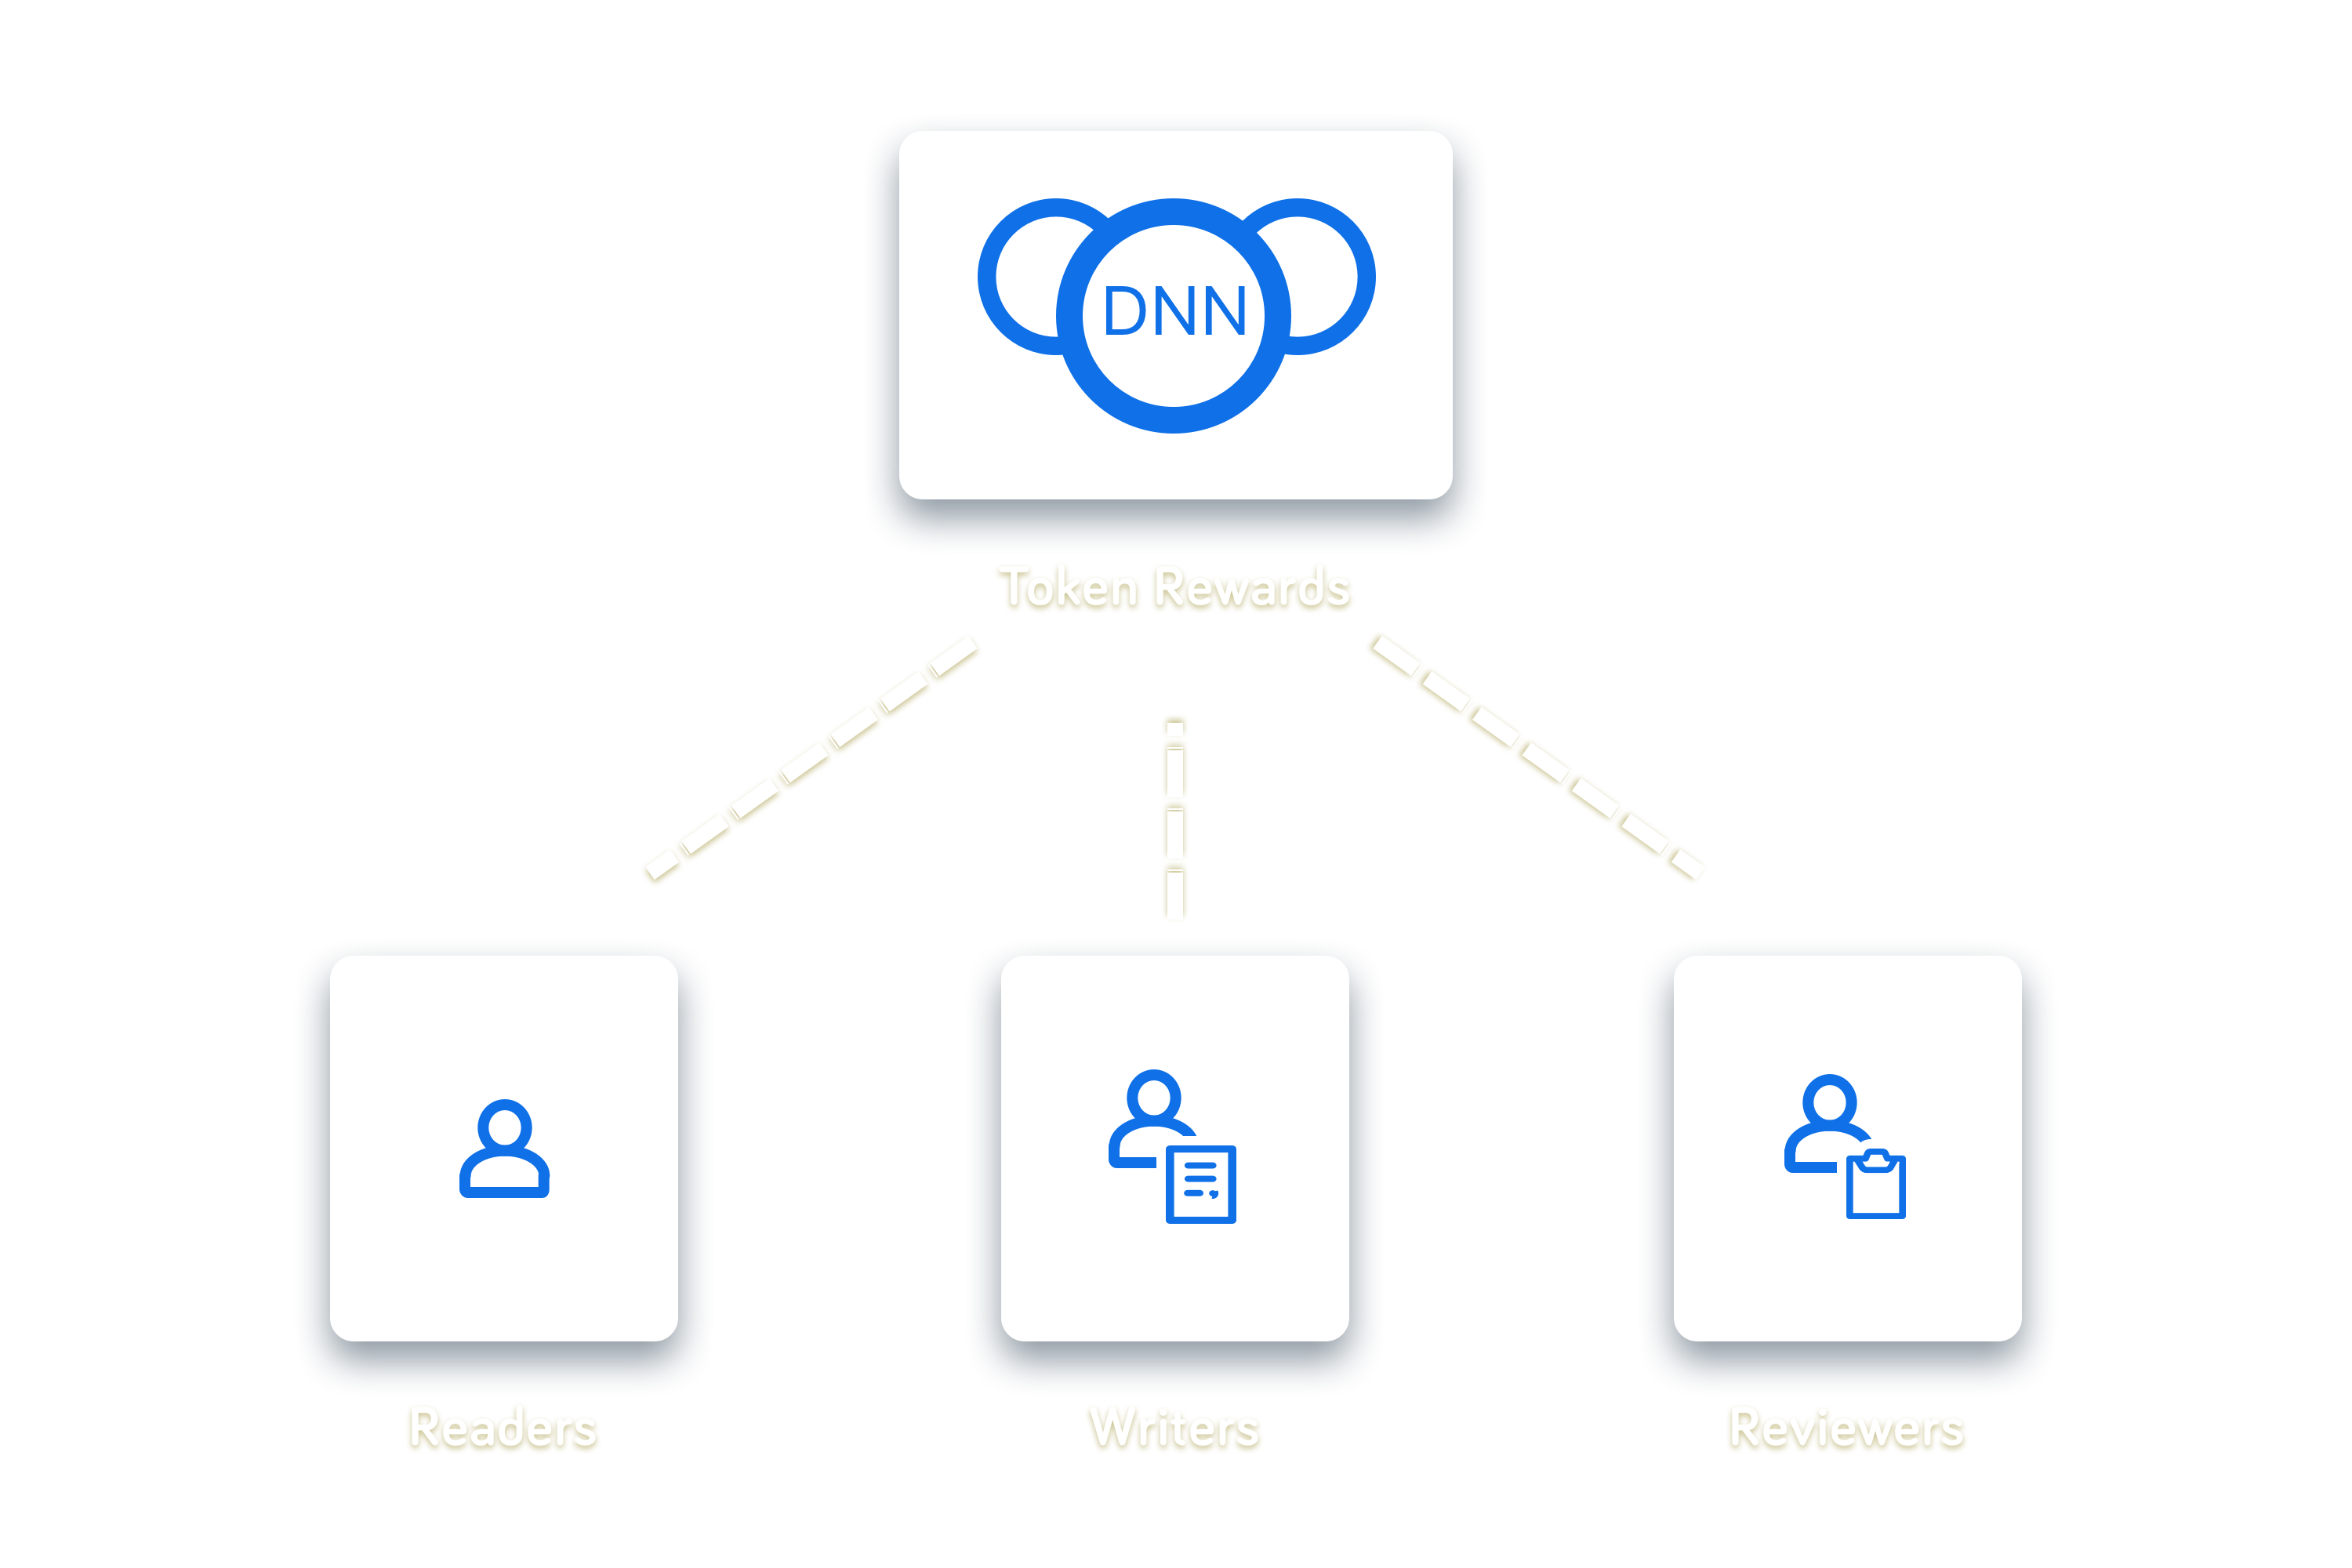 DNN rewards